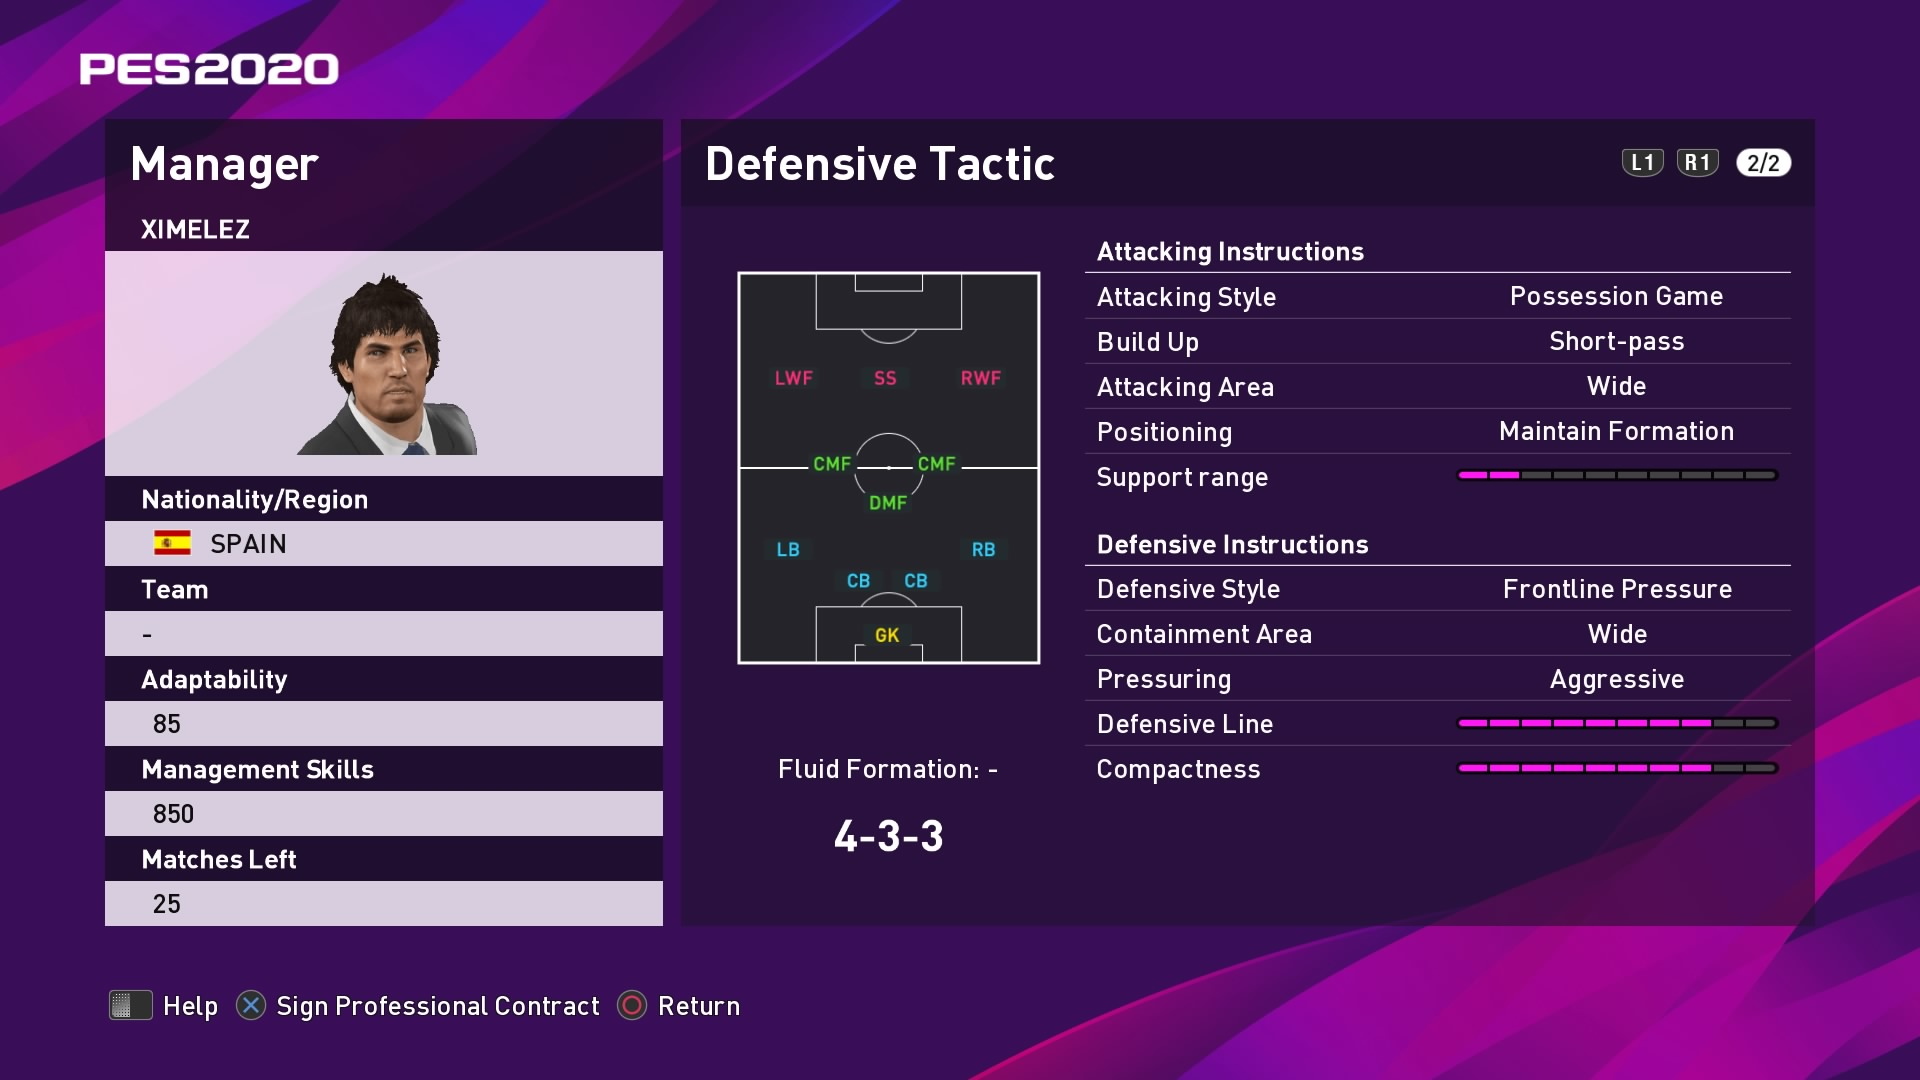 Ximelez Defensive Tactic in PES 2020 myClub